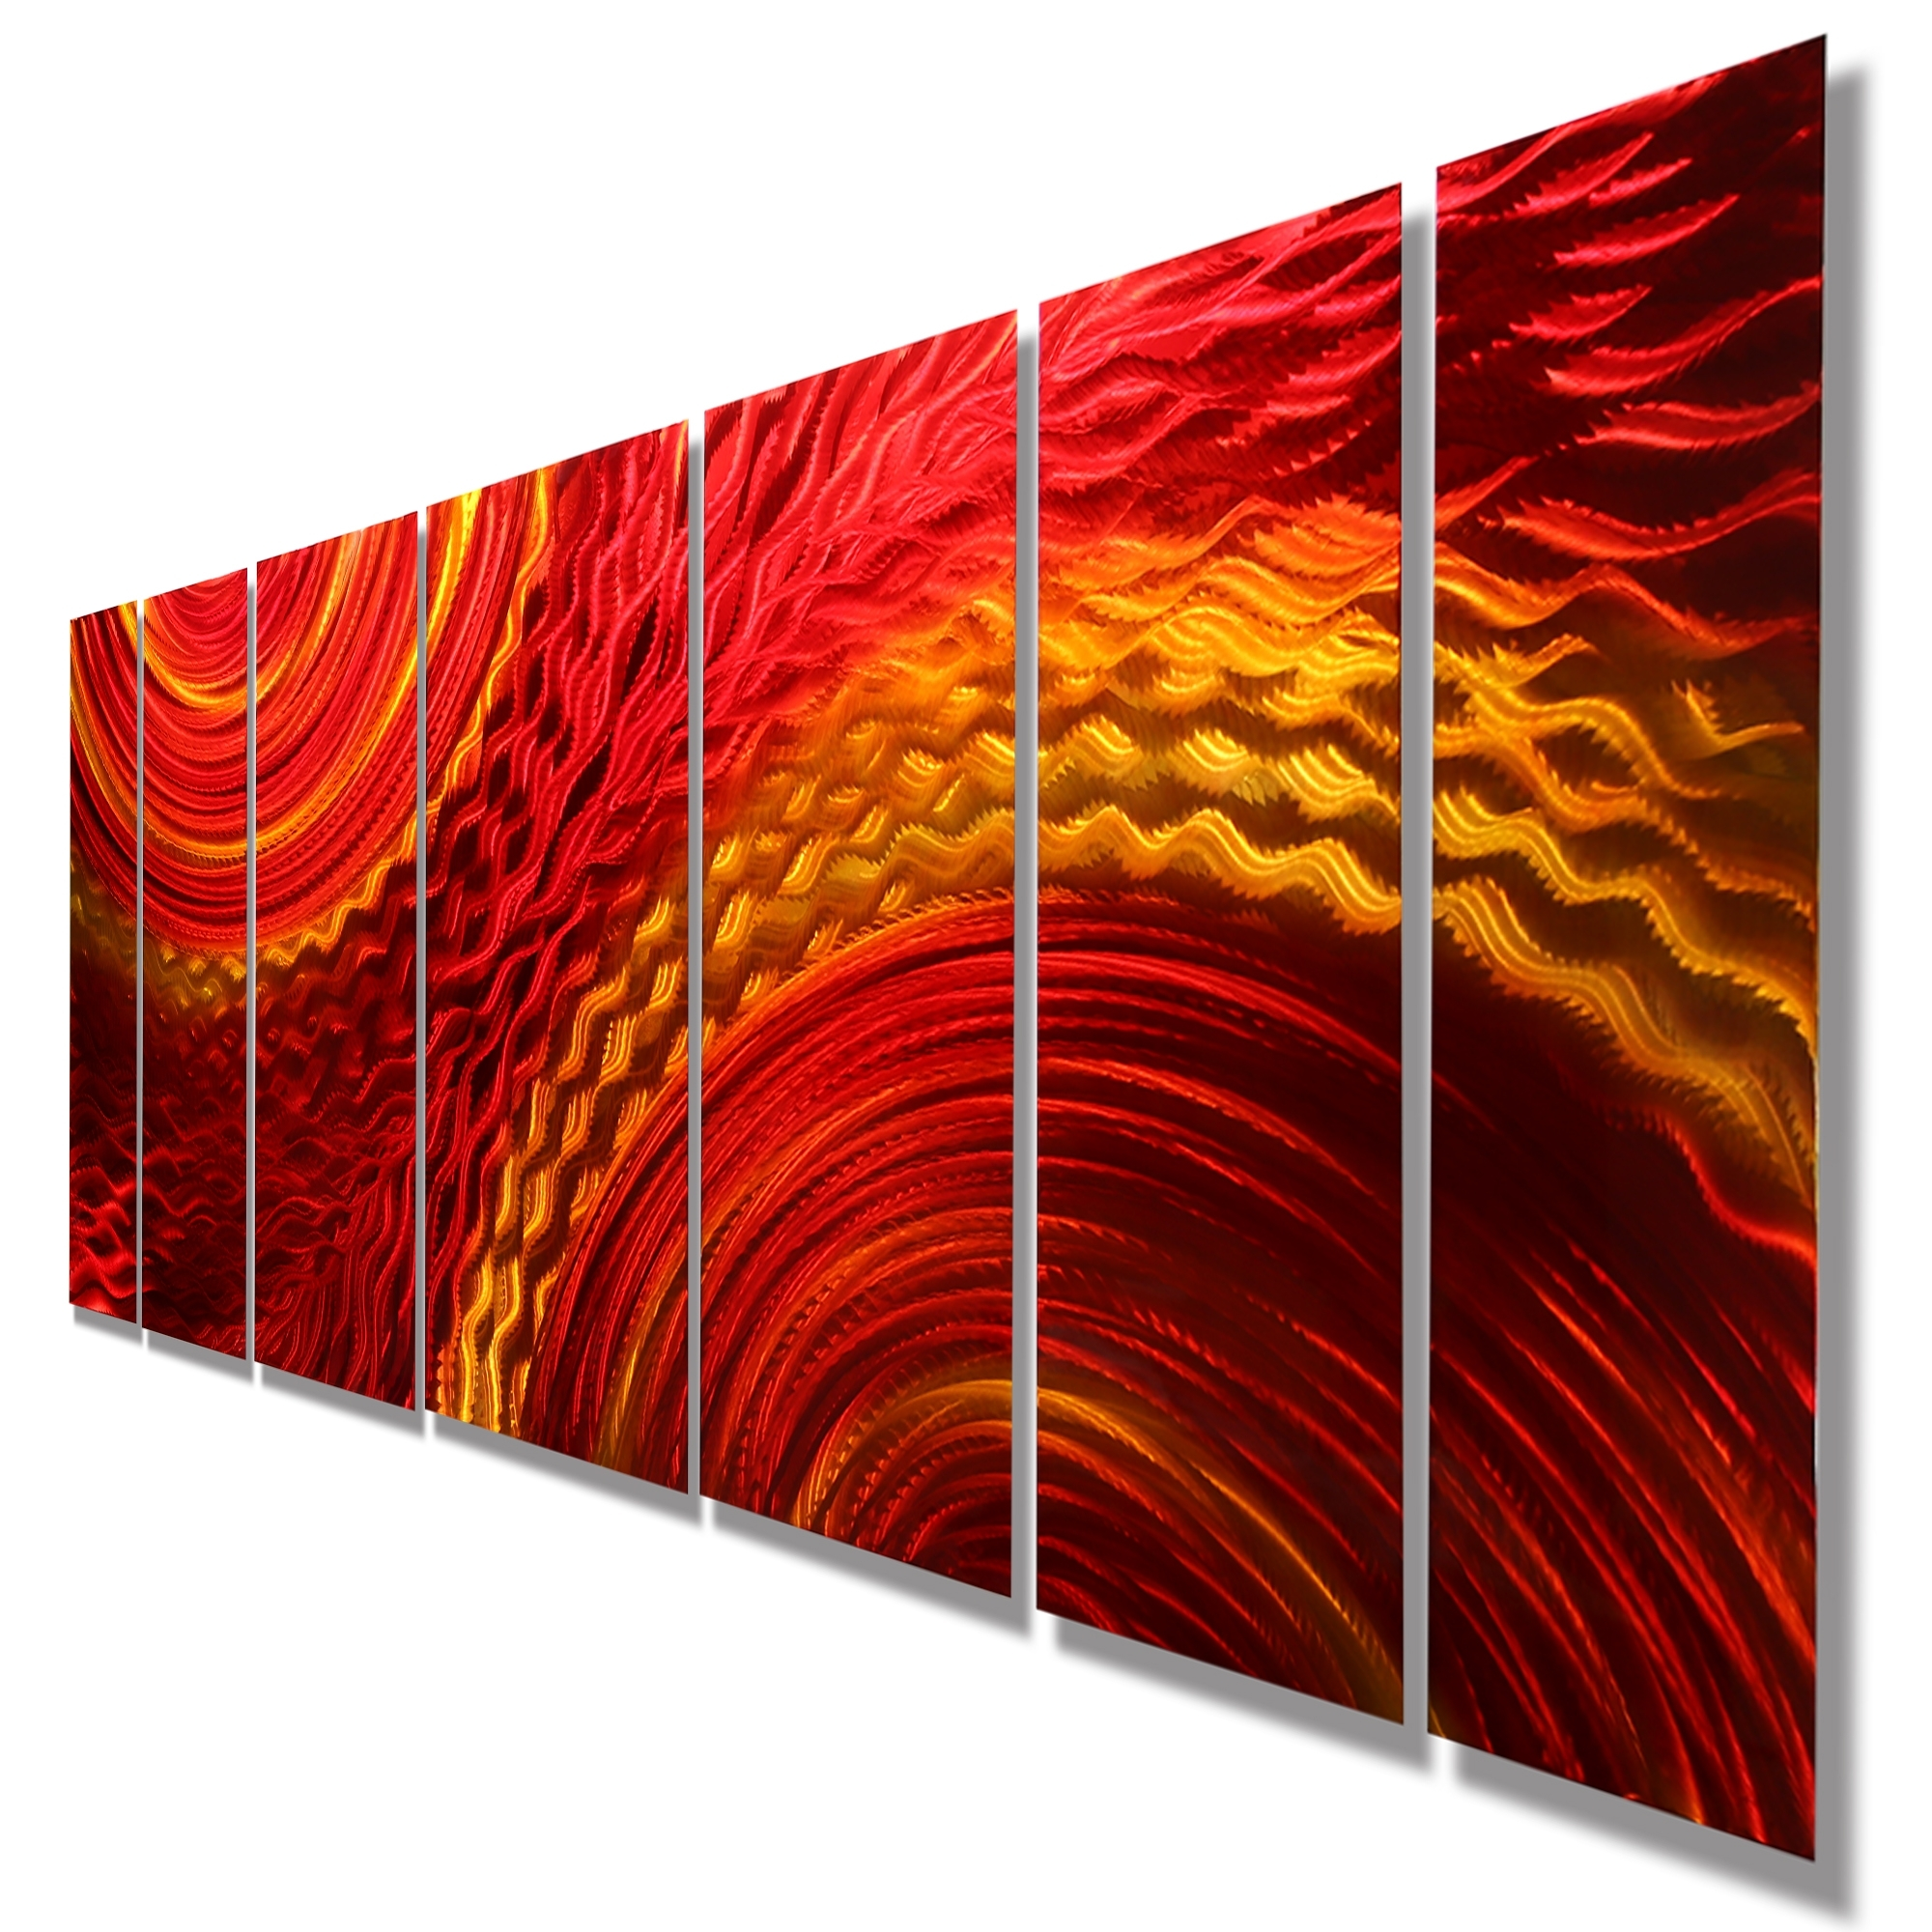 Home Decor: Alluring Abstract Metal Wall Art With Harvest Moods Xl Within Most Recent Abstract Wall Art Australia (View 5 of 20)